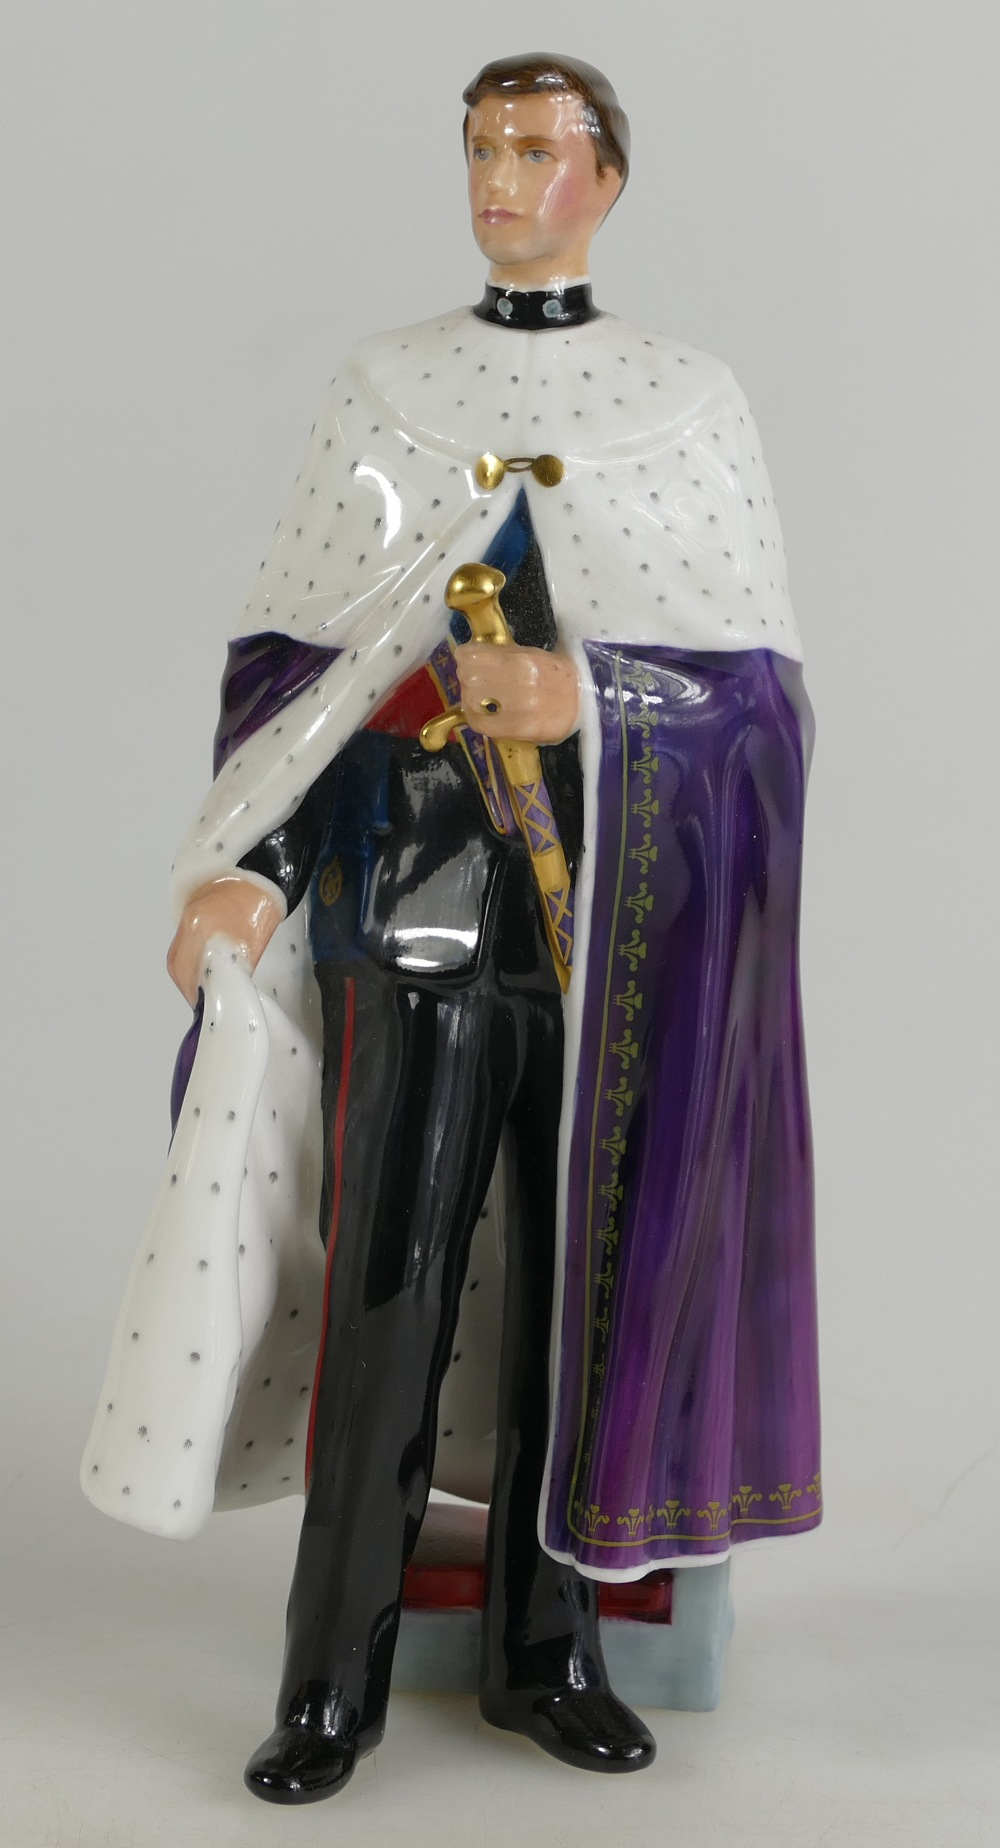 Lot 190 - Royal Doulton prestige figure HRH The Pr